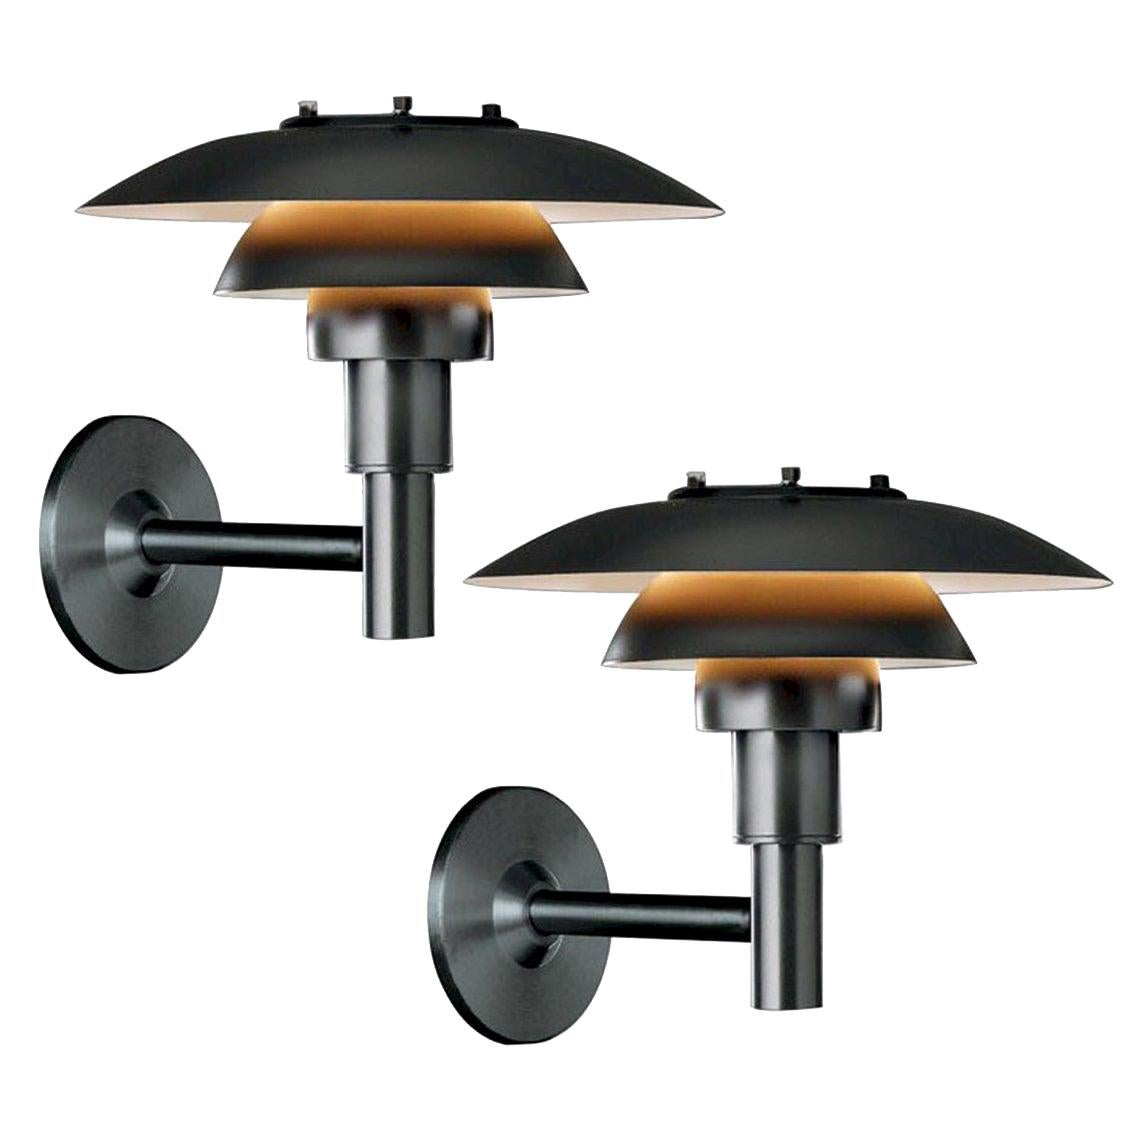 PH 3-2 1/2 Outdoor Wall Sconce